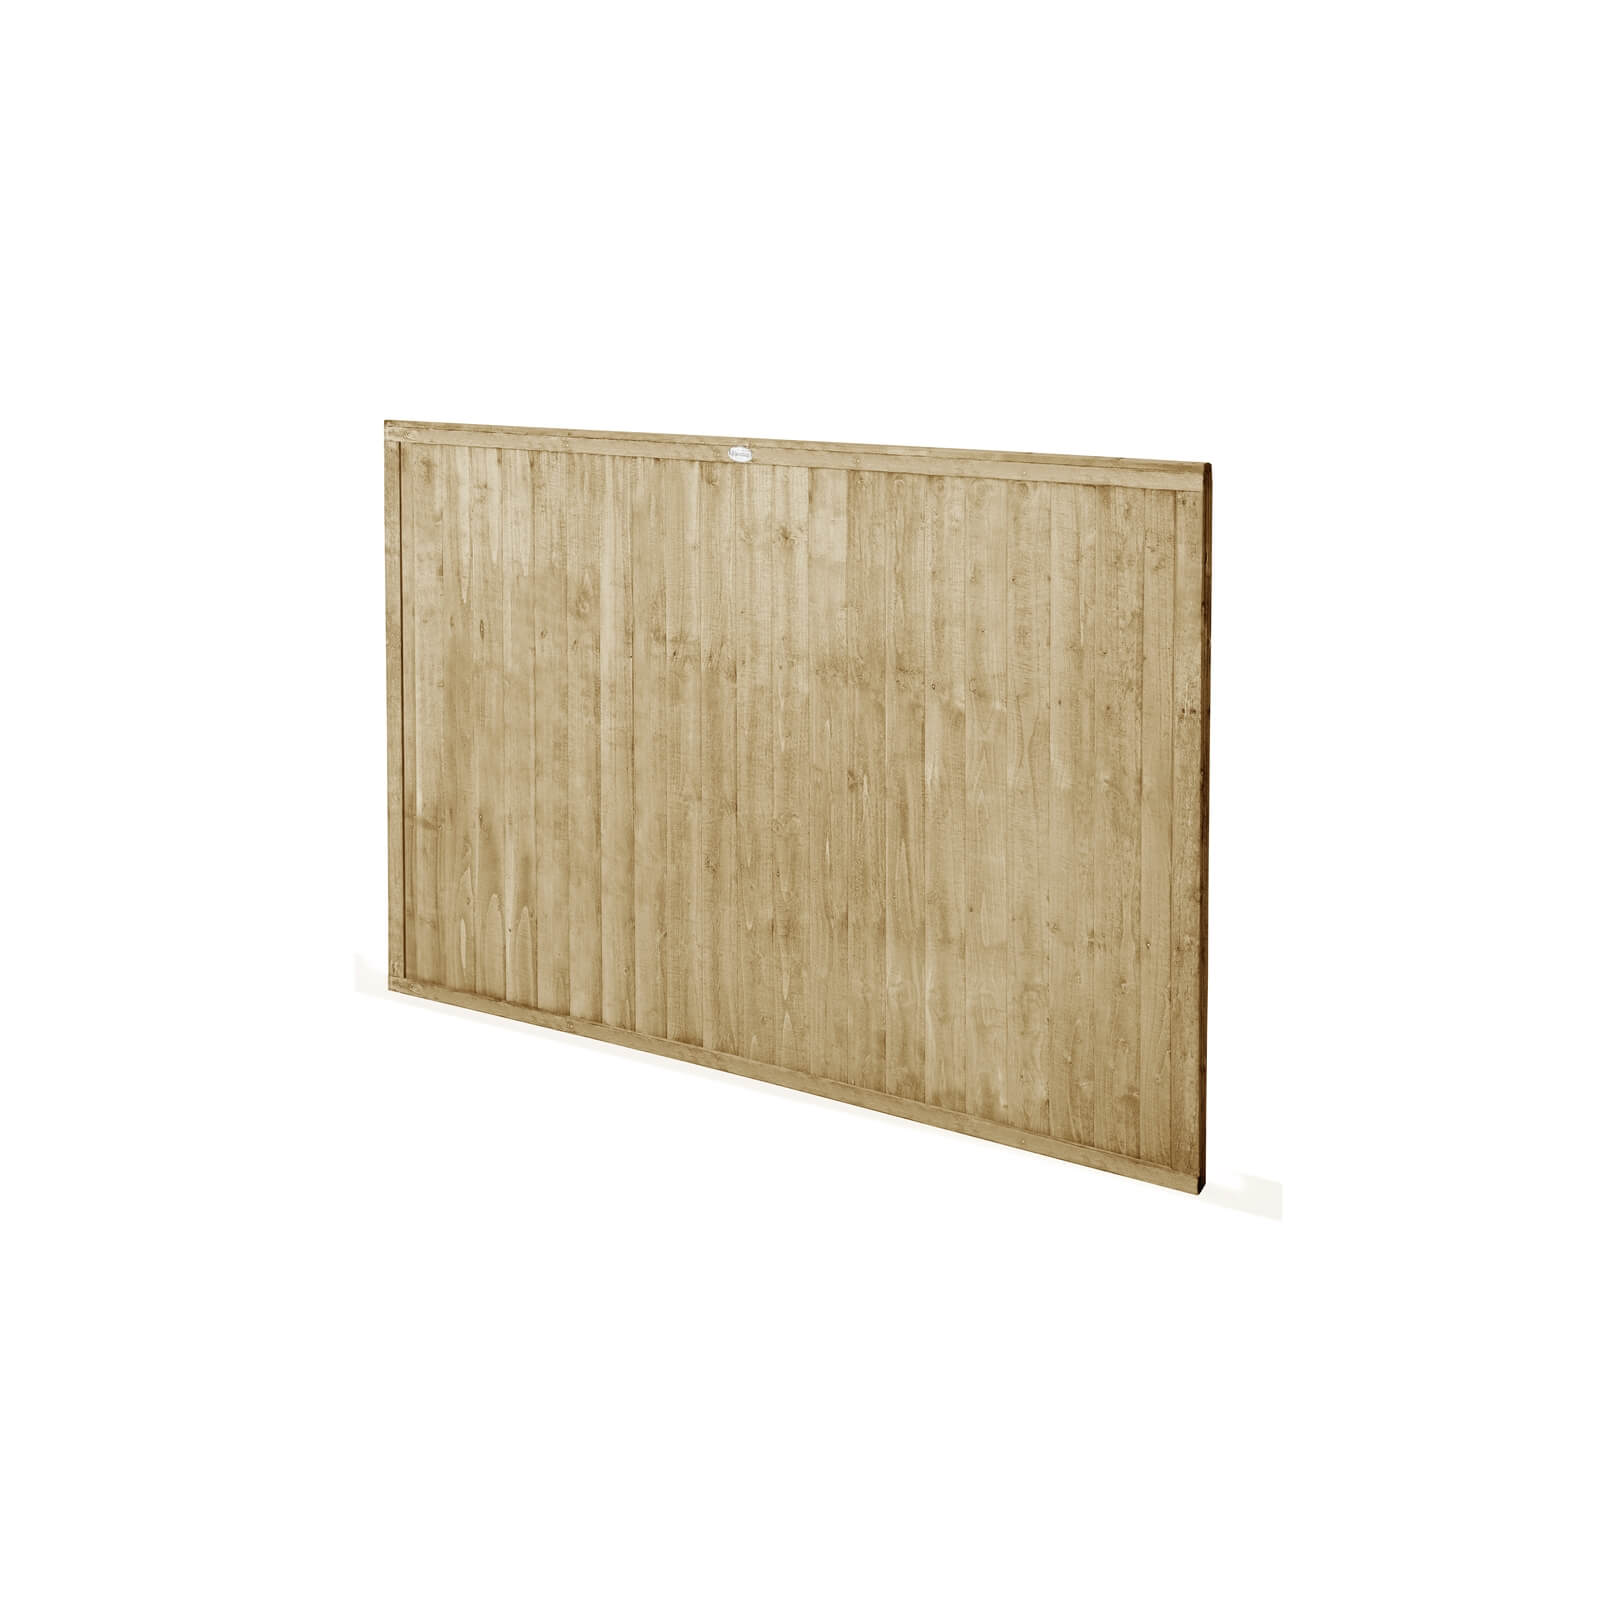 6ft x 4ft (1.83m x 1.22m) Pressure Treated Closeboard Fence Panel - Pack of 3